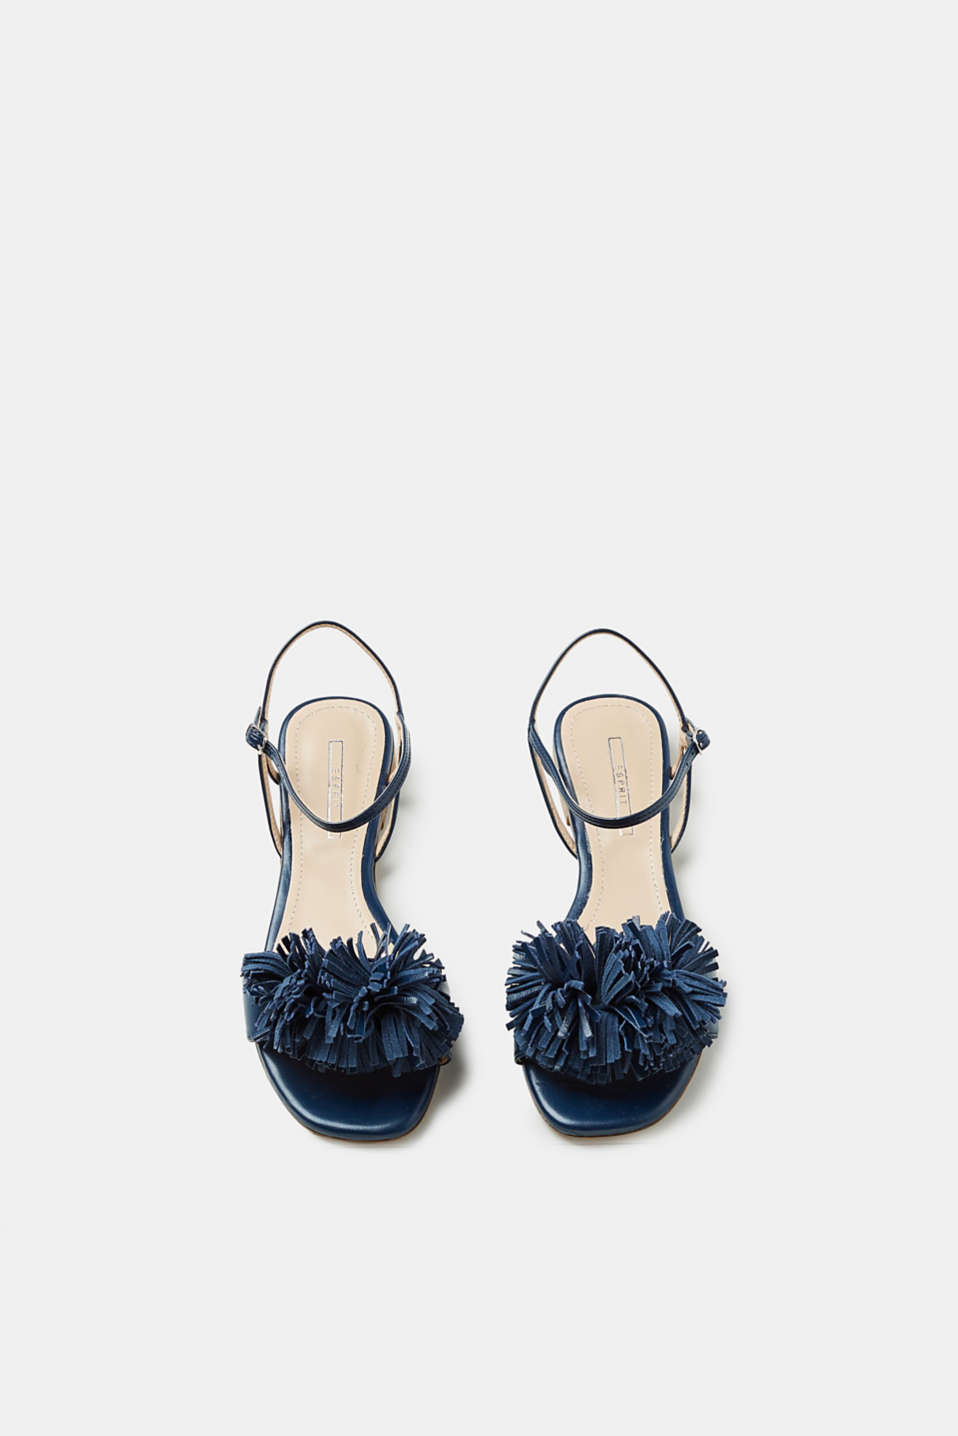 Flat sandals with fringe embellishment